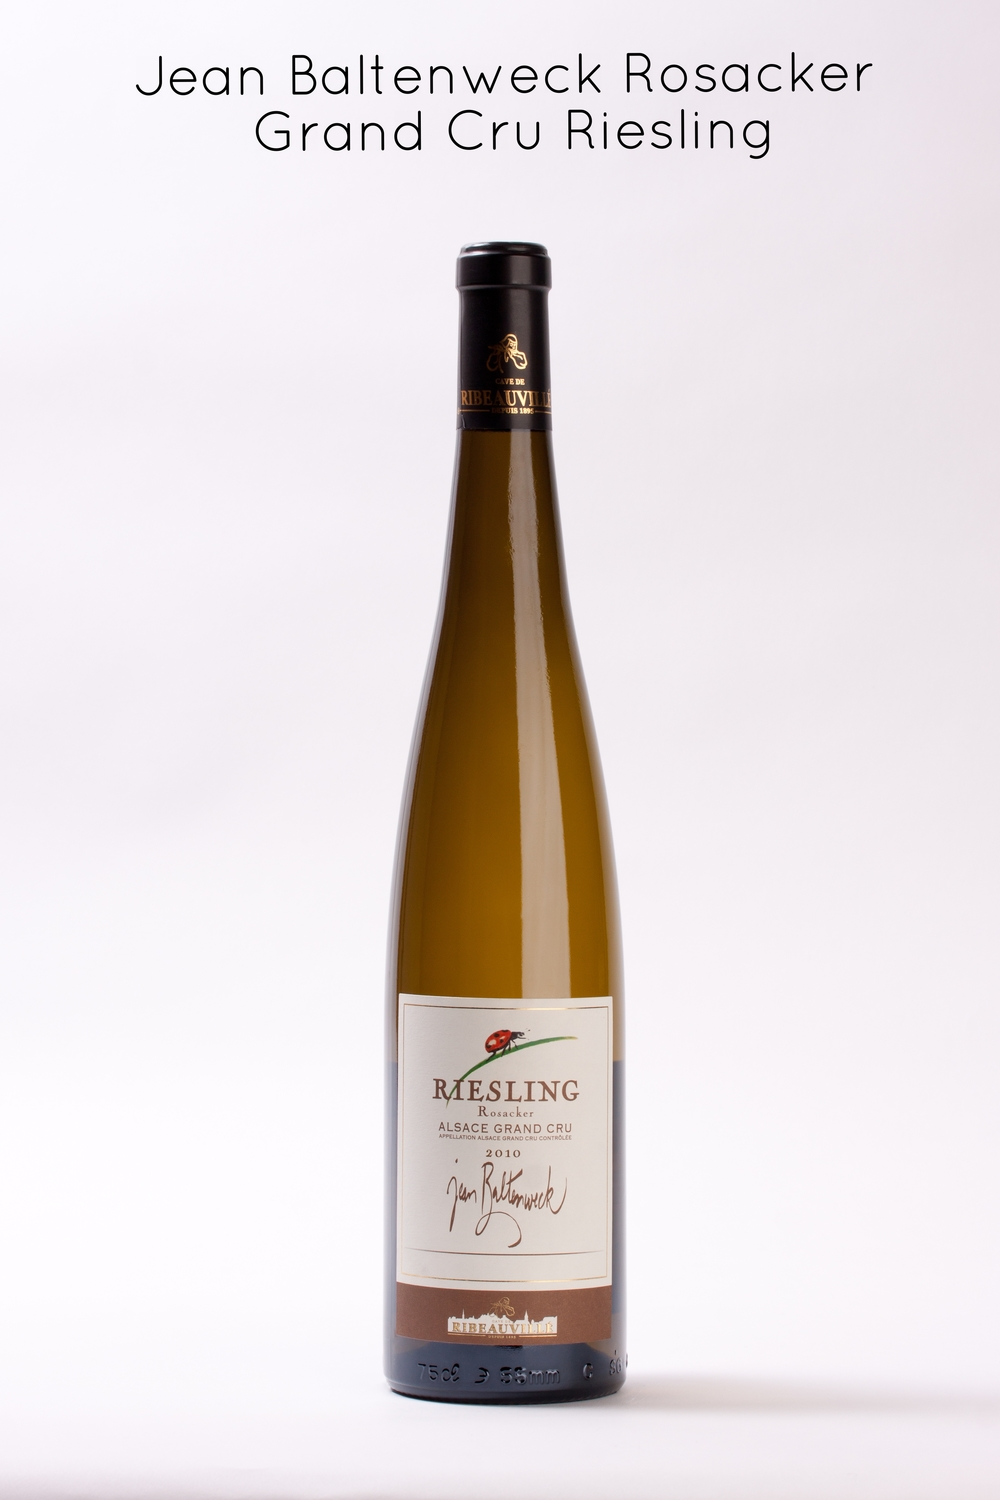 Cave de Ribeauville Jean Baltenweck Riesling